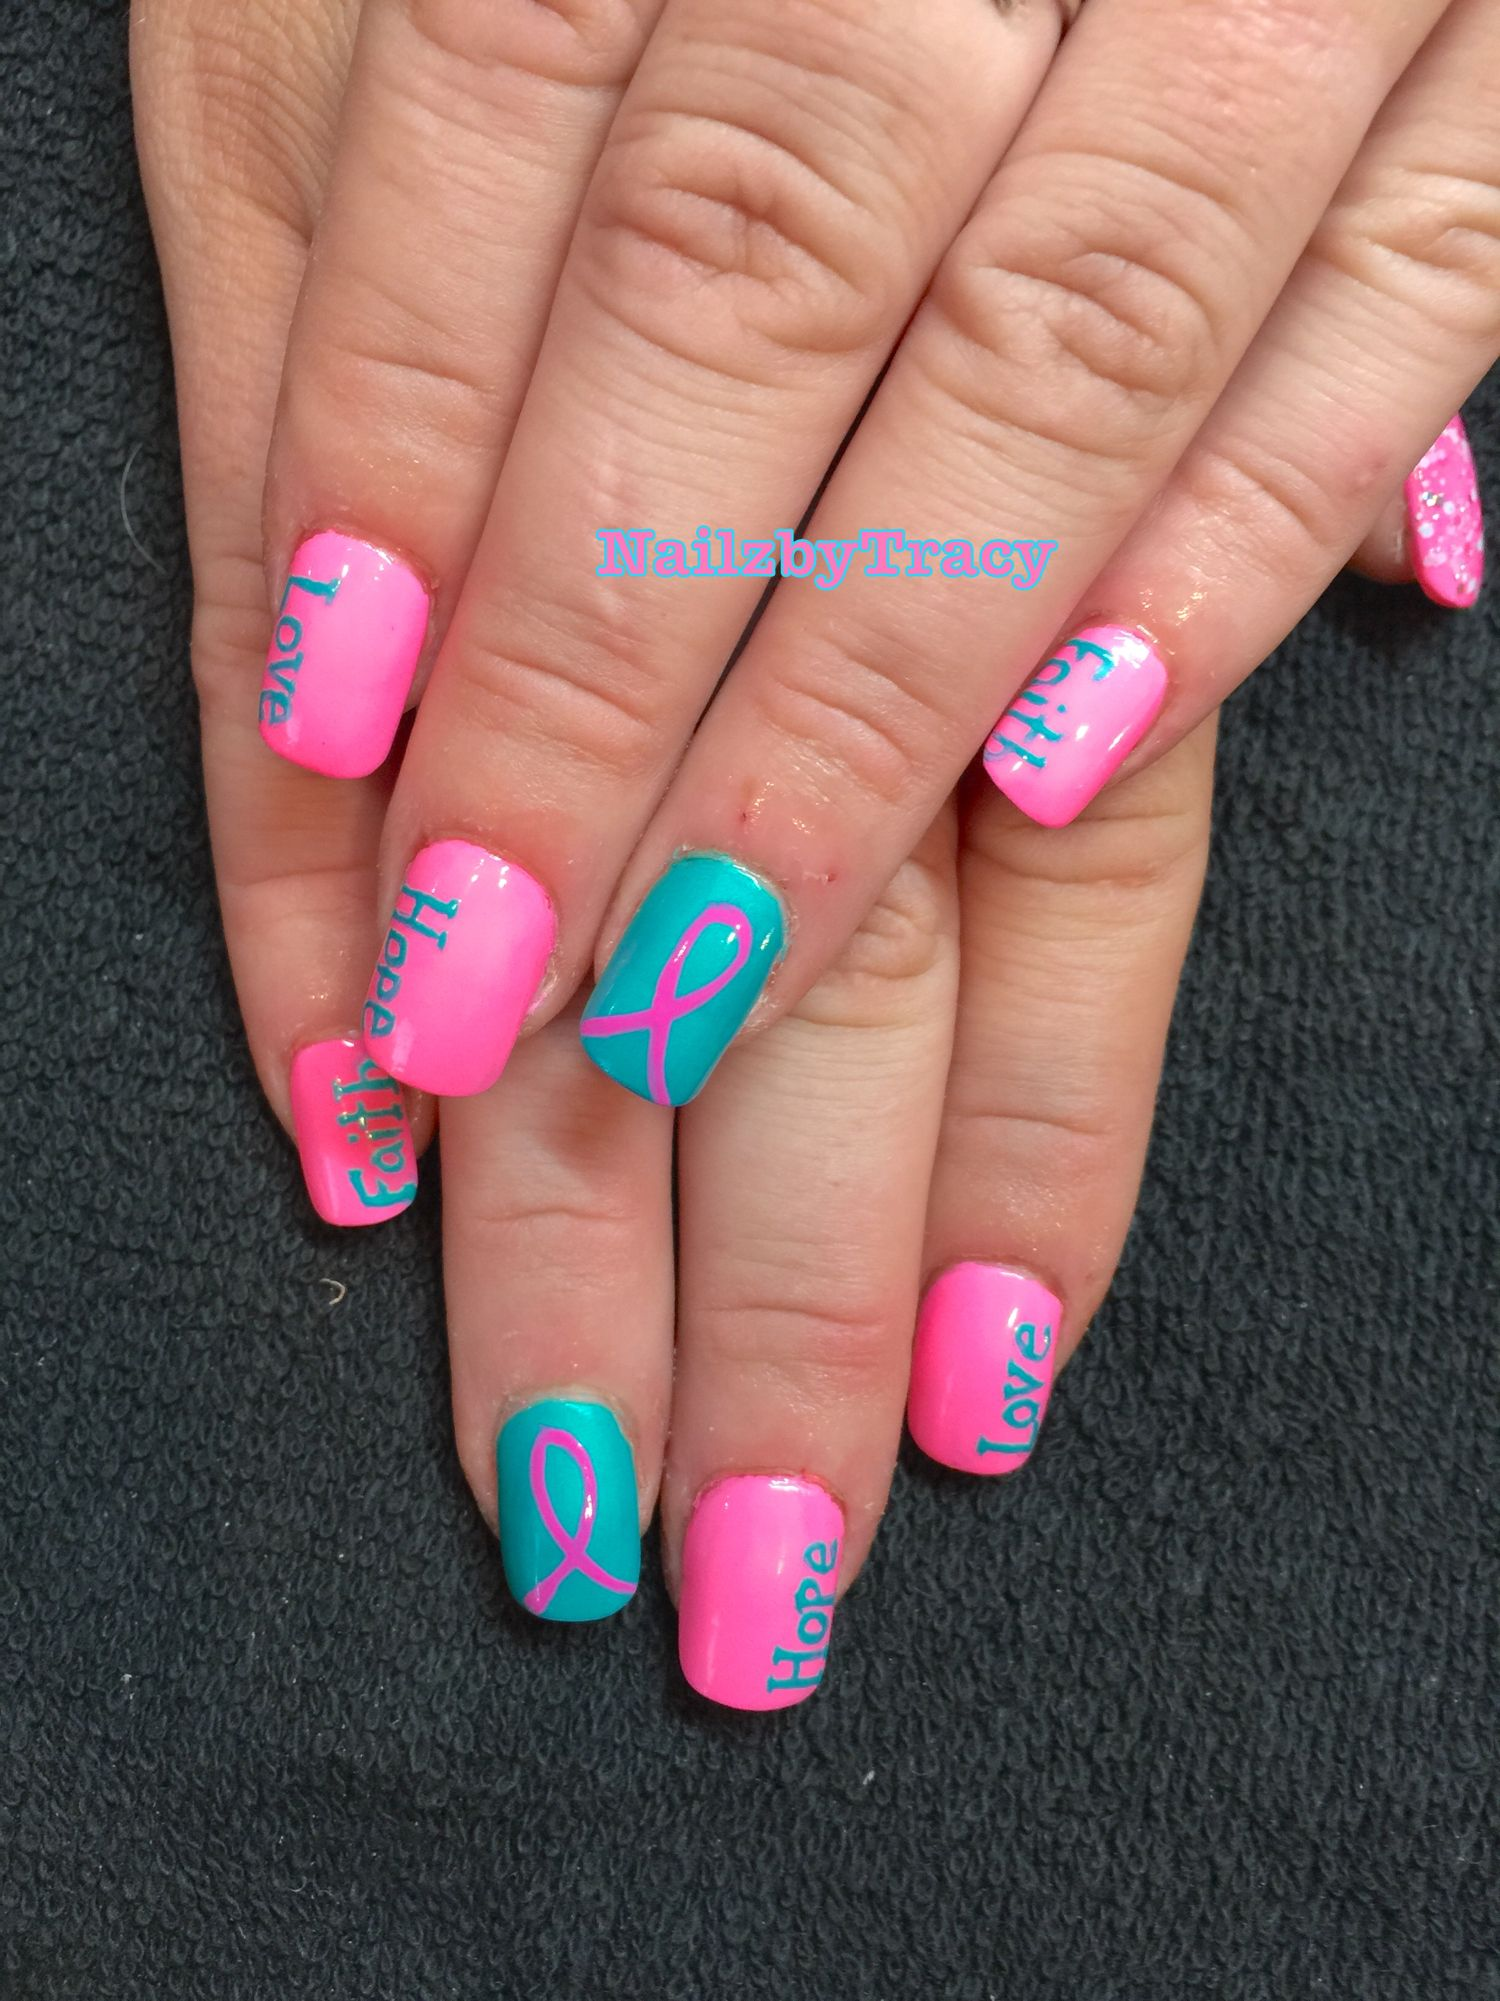 Breast Cancer Awareness Nails | Fall nails | Pinterest | Breast ...